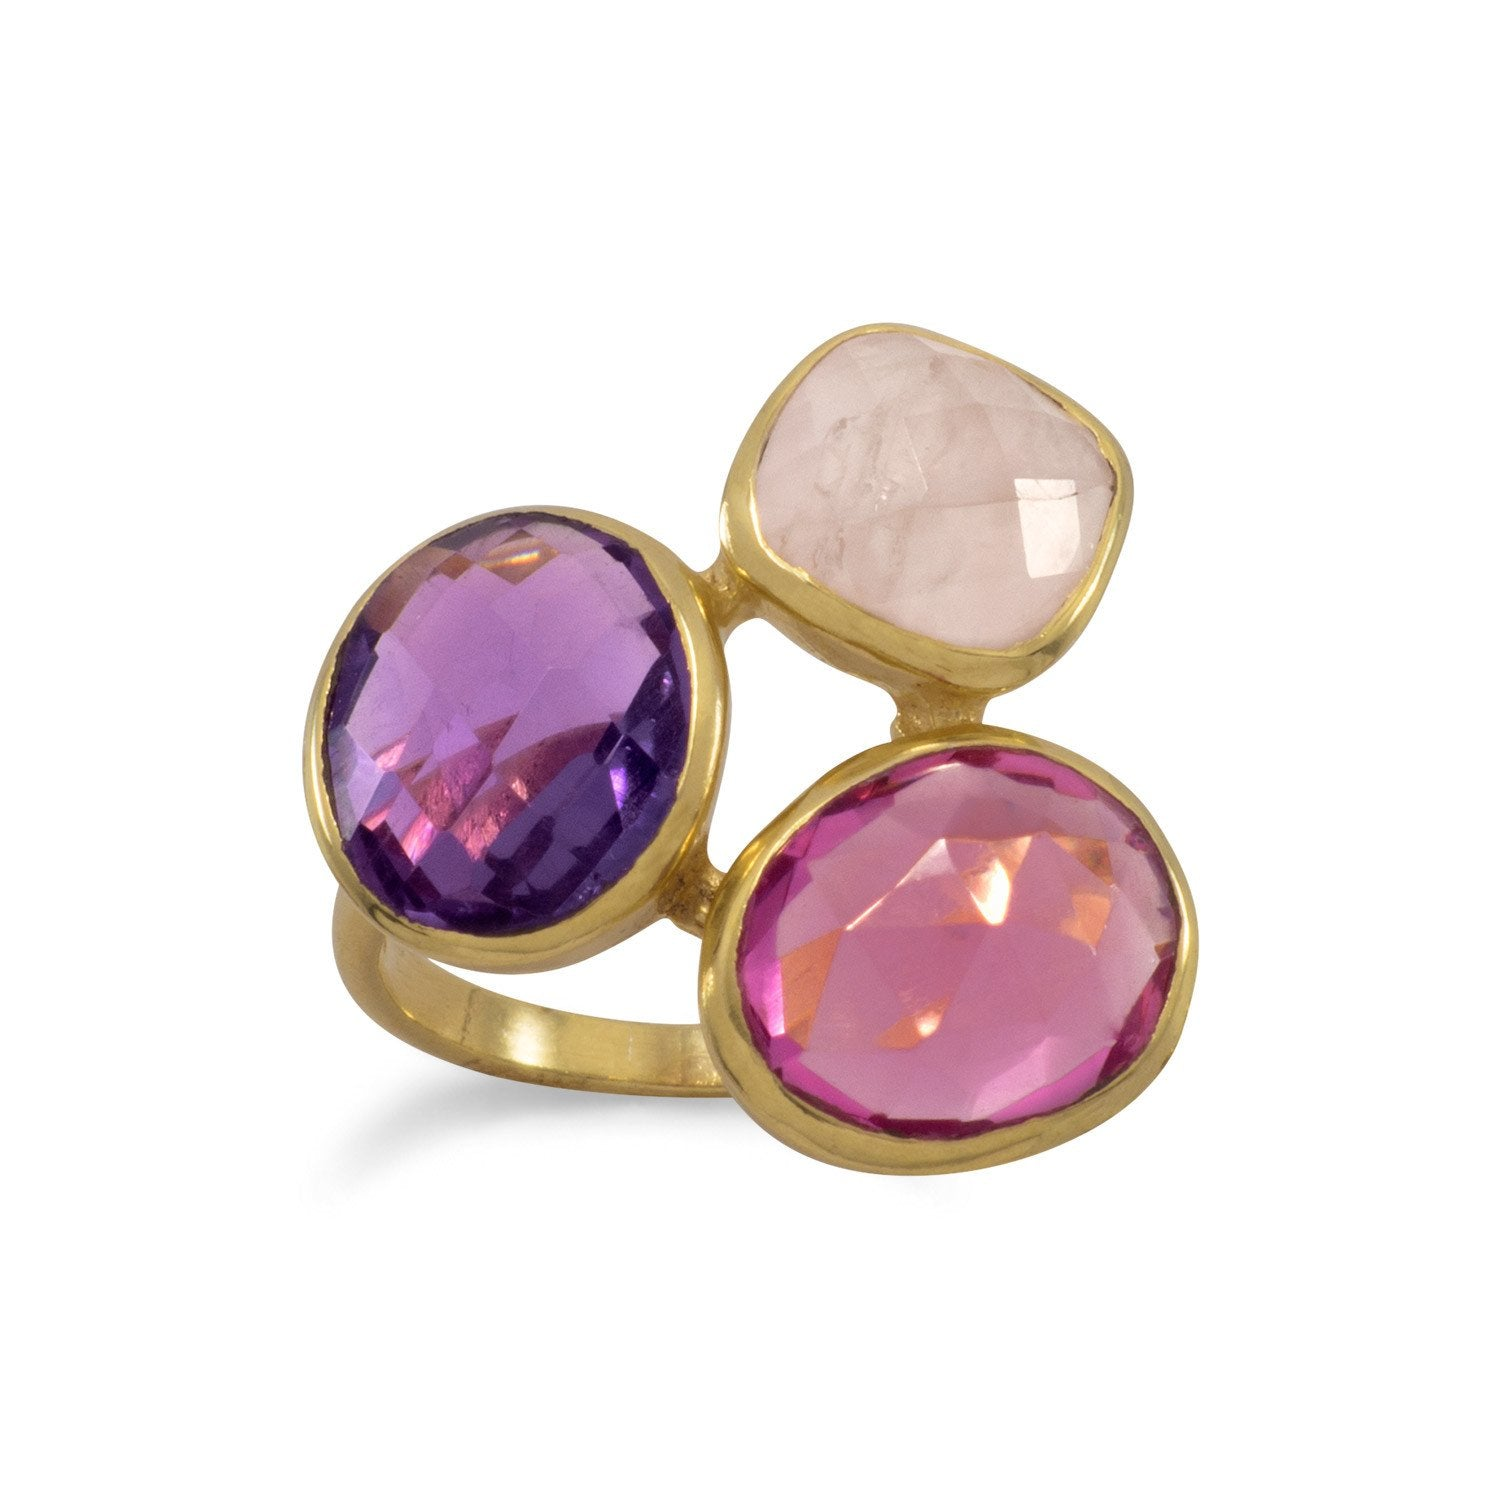 14 Karat Gold Plated Multistone Ring - Rocky Mt. Discount Outlet